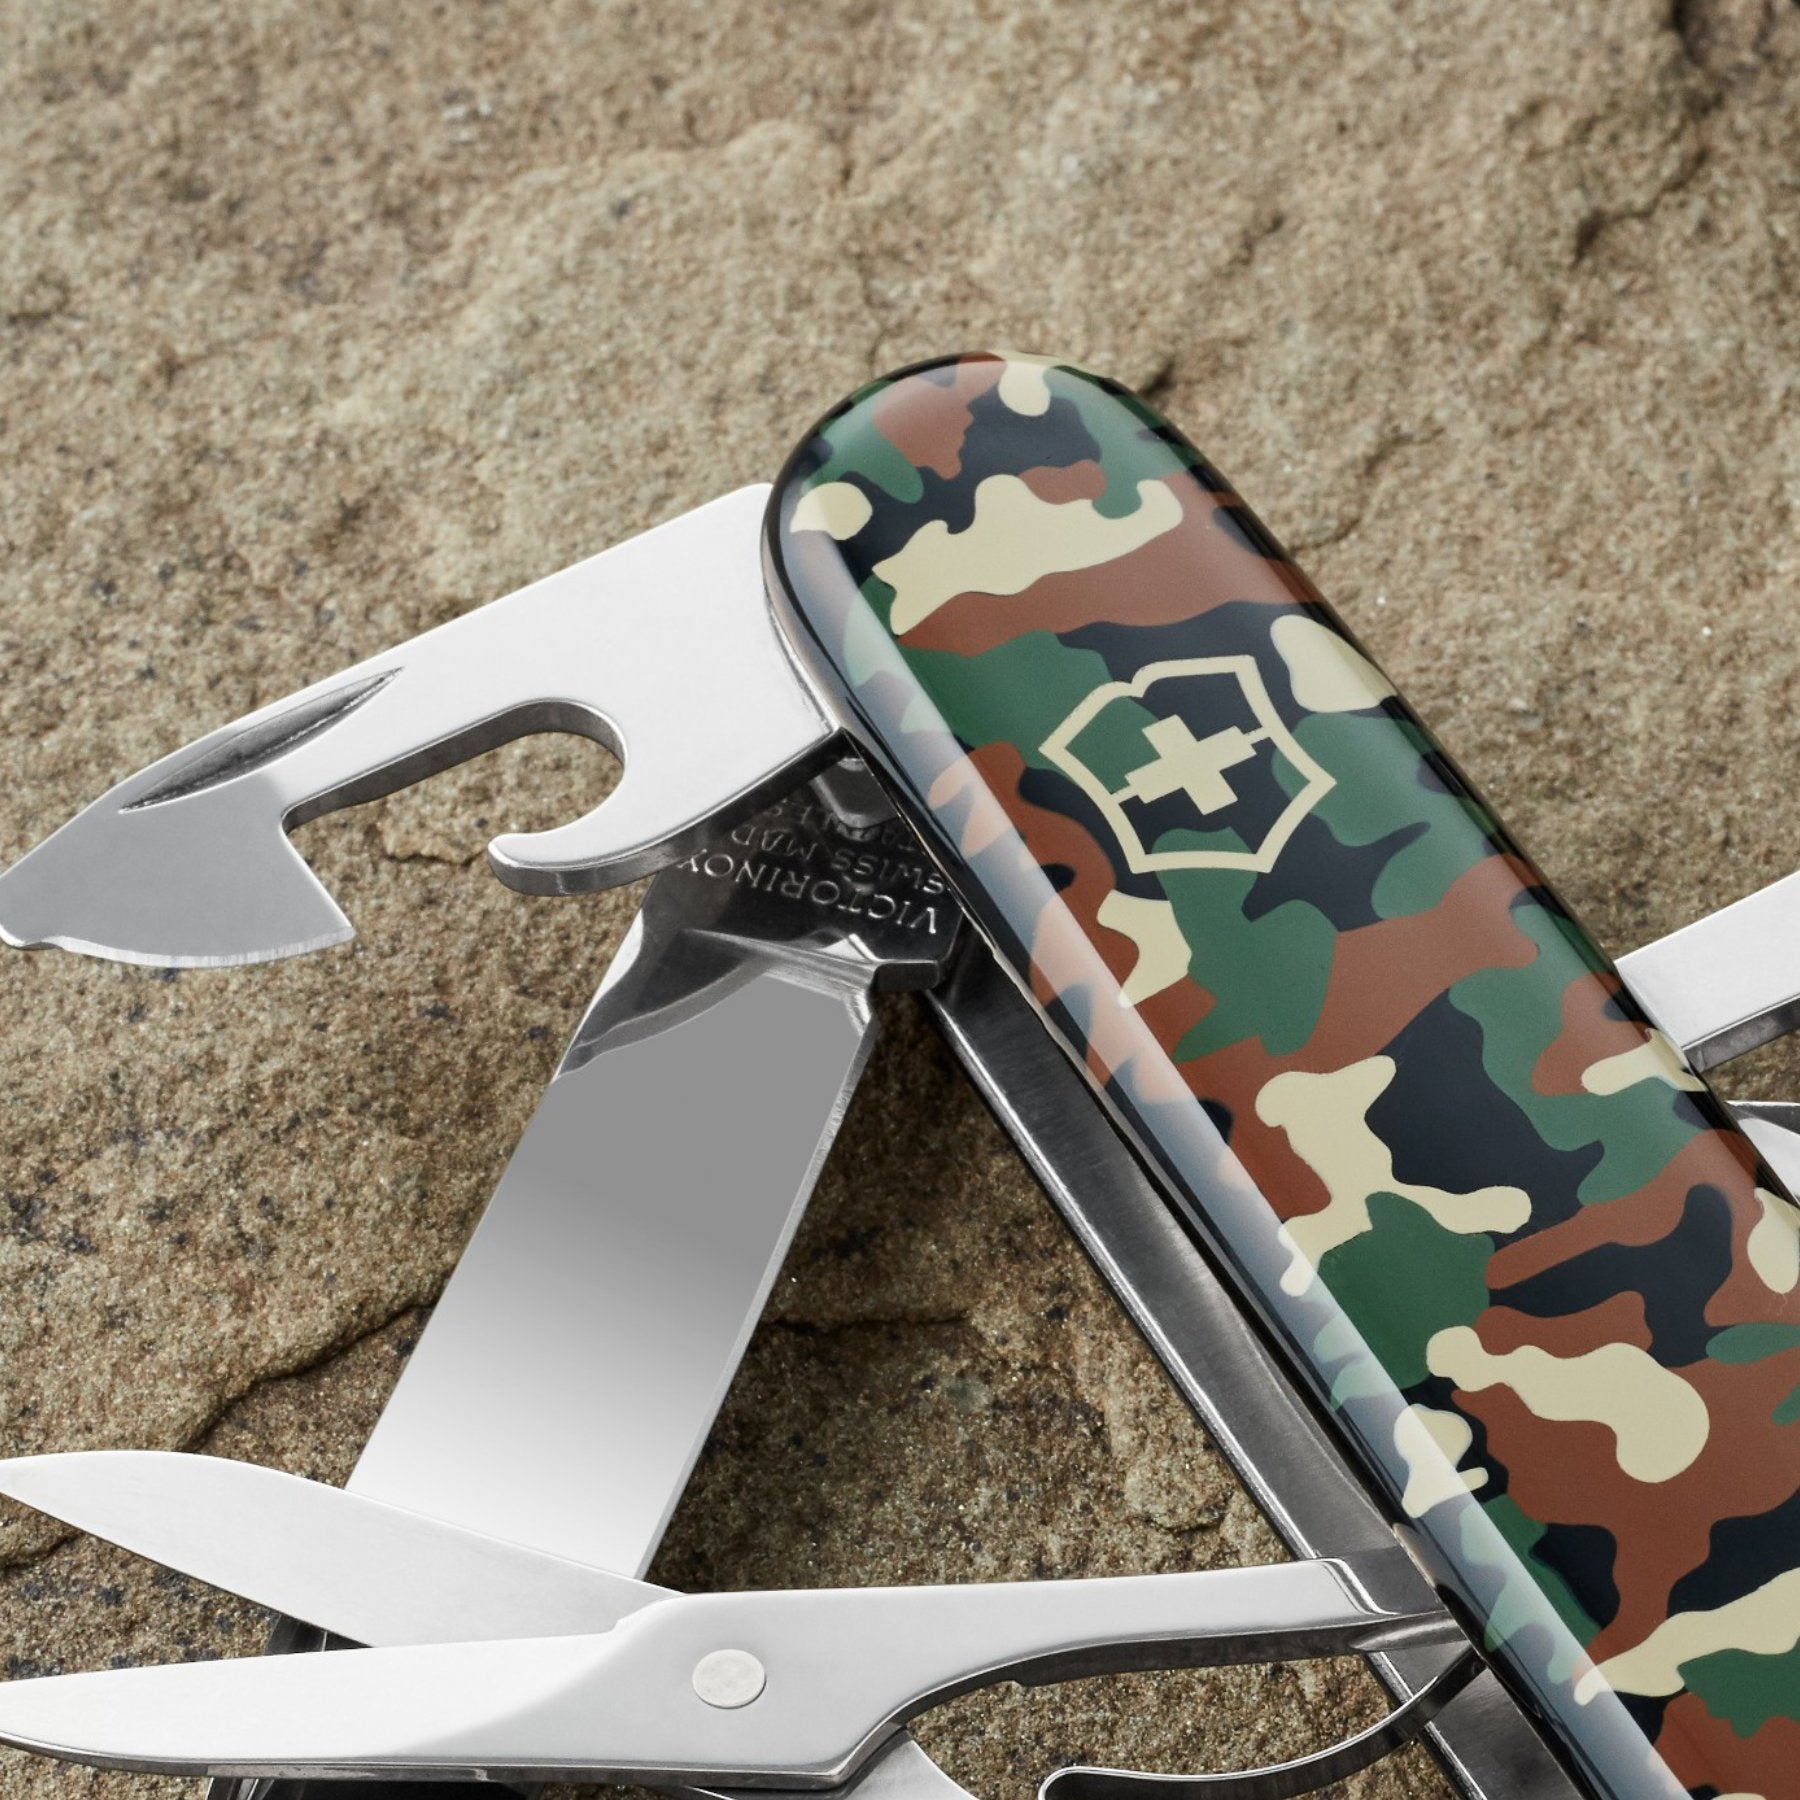 Camouflage Swiss Army Knives by Victorinox at Swiss Knife Shop